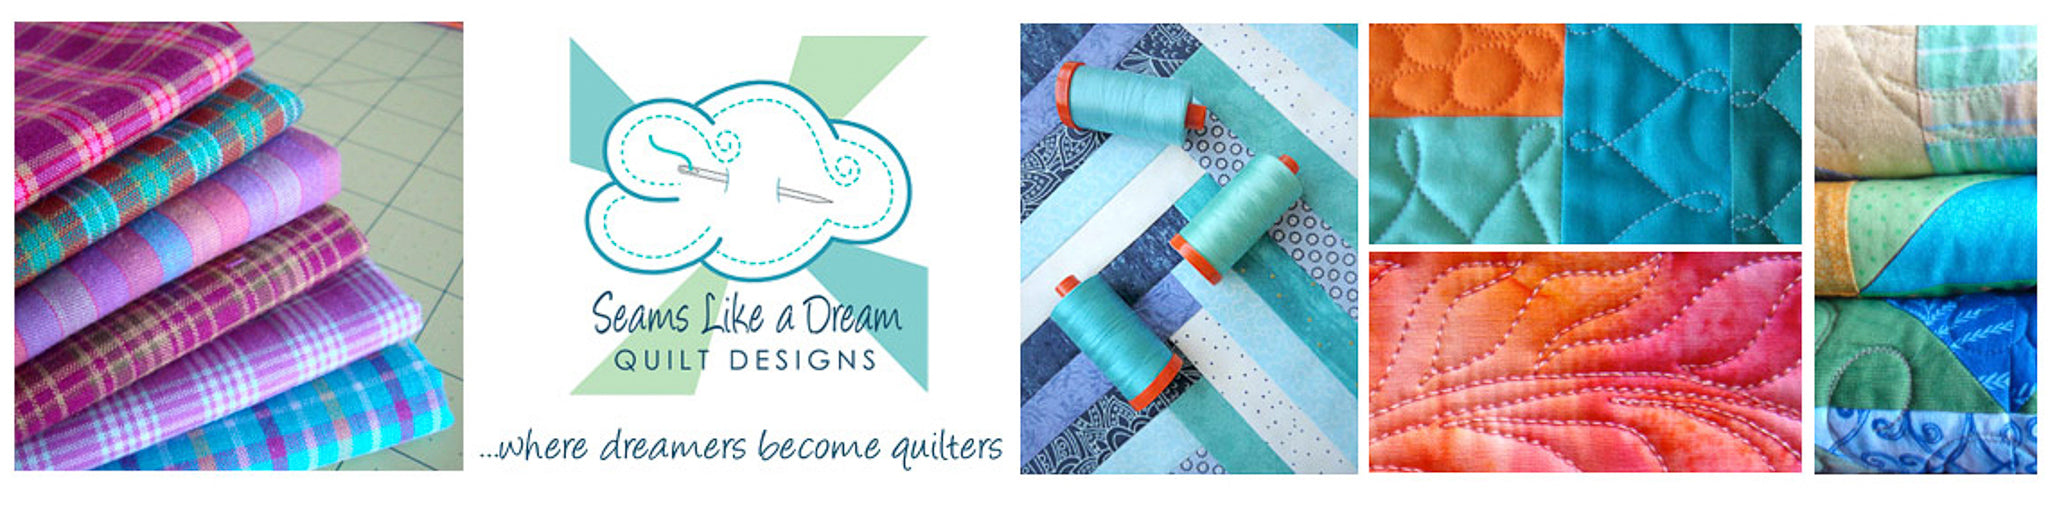 Seams Like A Dream Quilt Designs by Kate Colleran